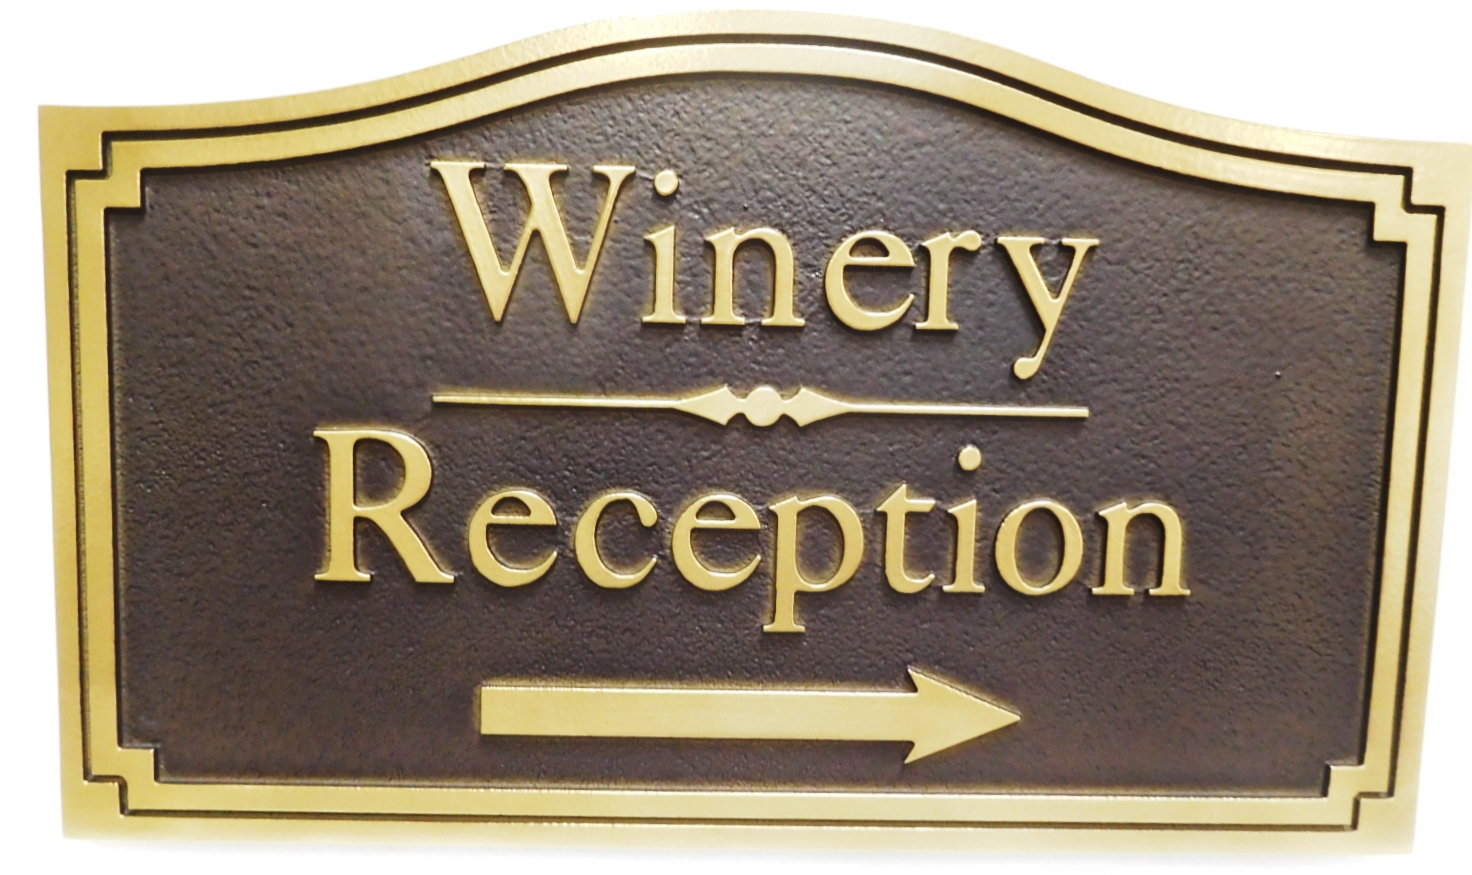 R27500 - Carved HDU Sign for the Reception Area of a Winery